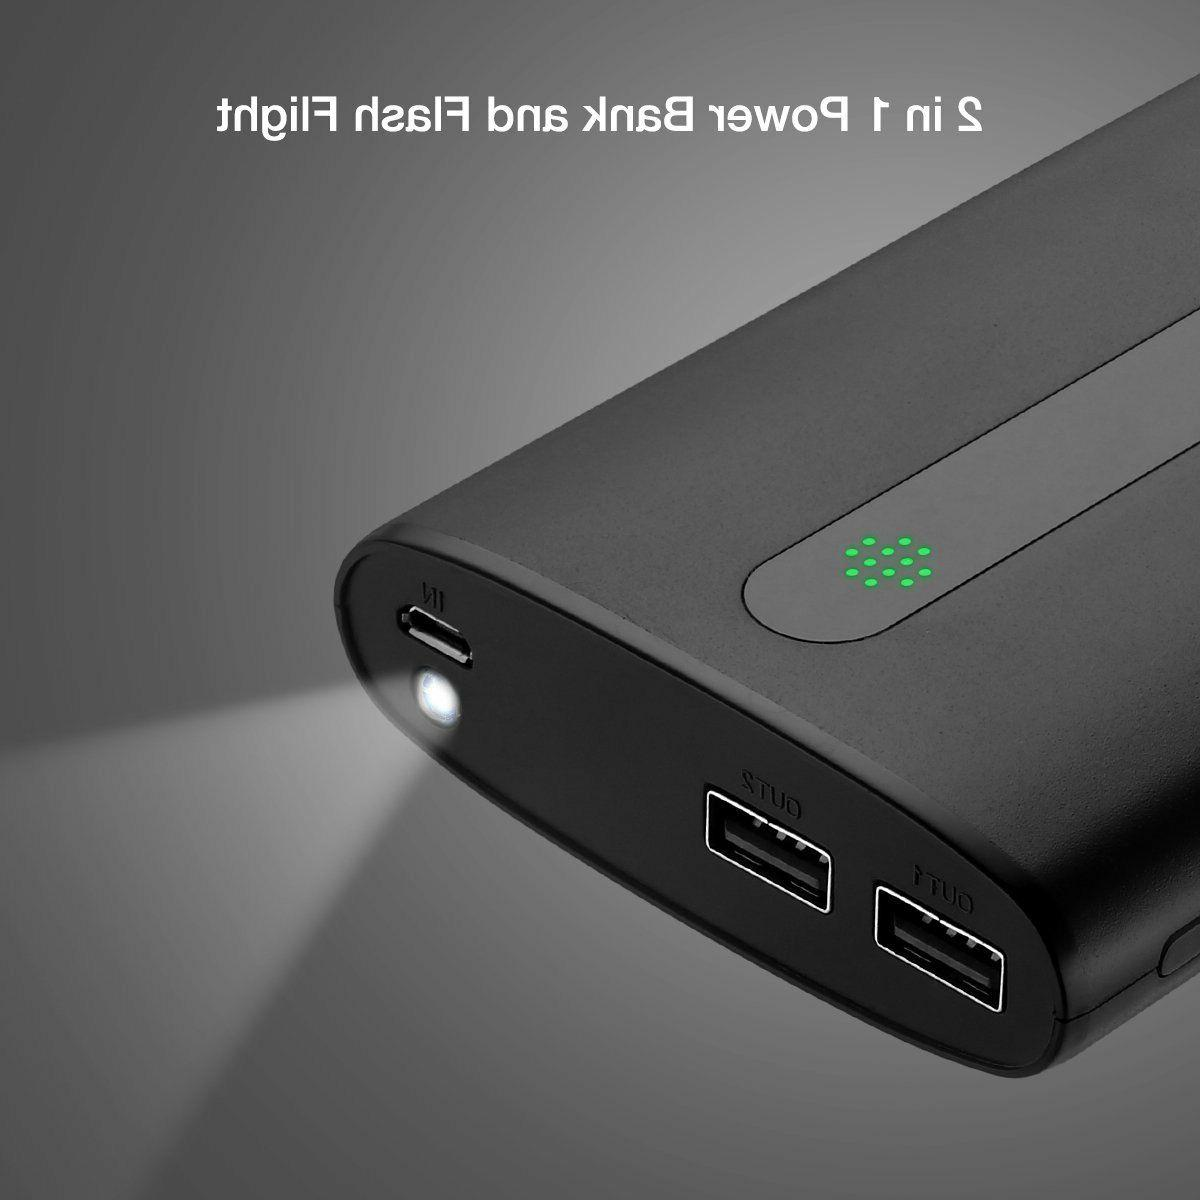 Aibocn Power 20000mAh Portable Charger with Flashlight